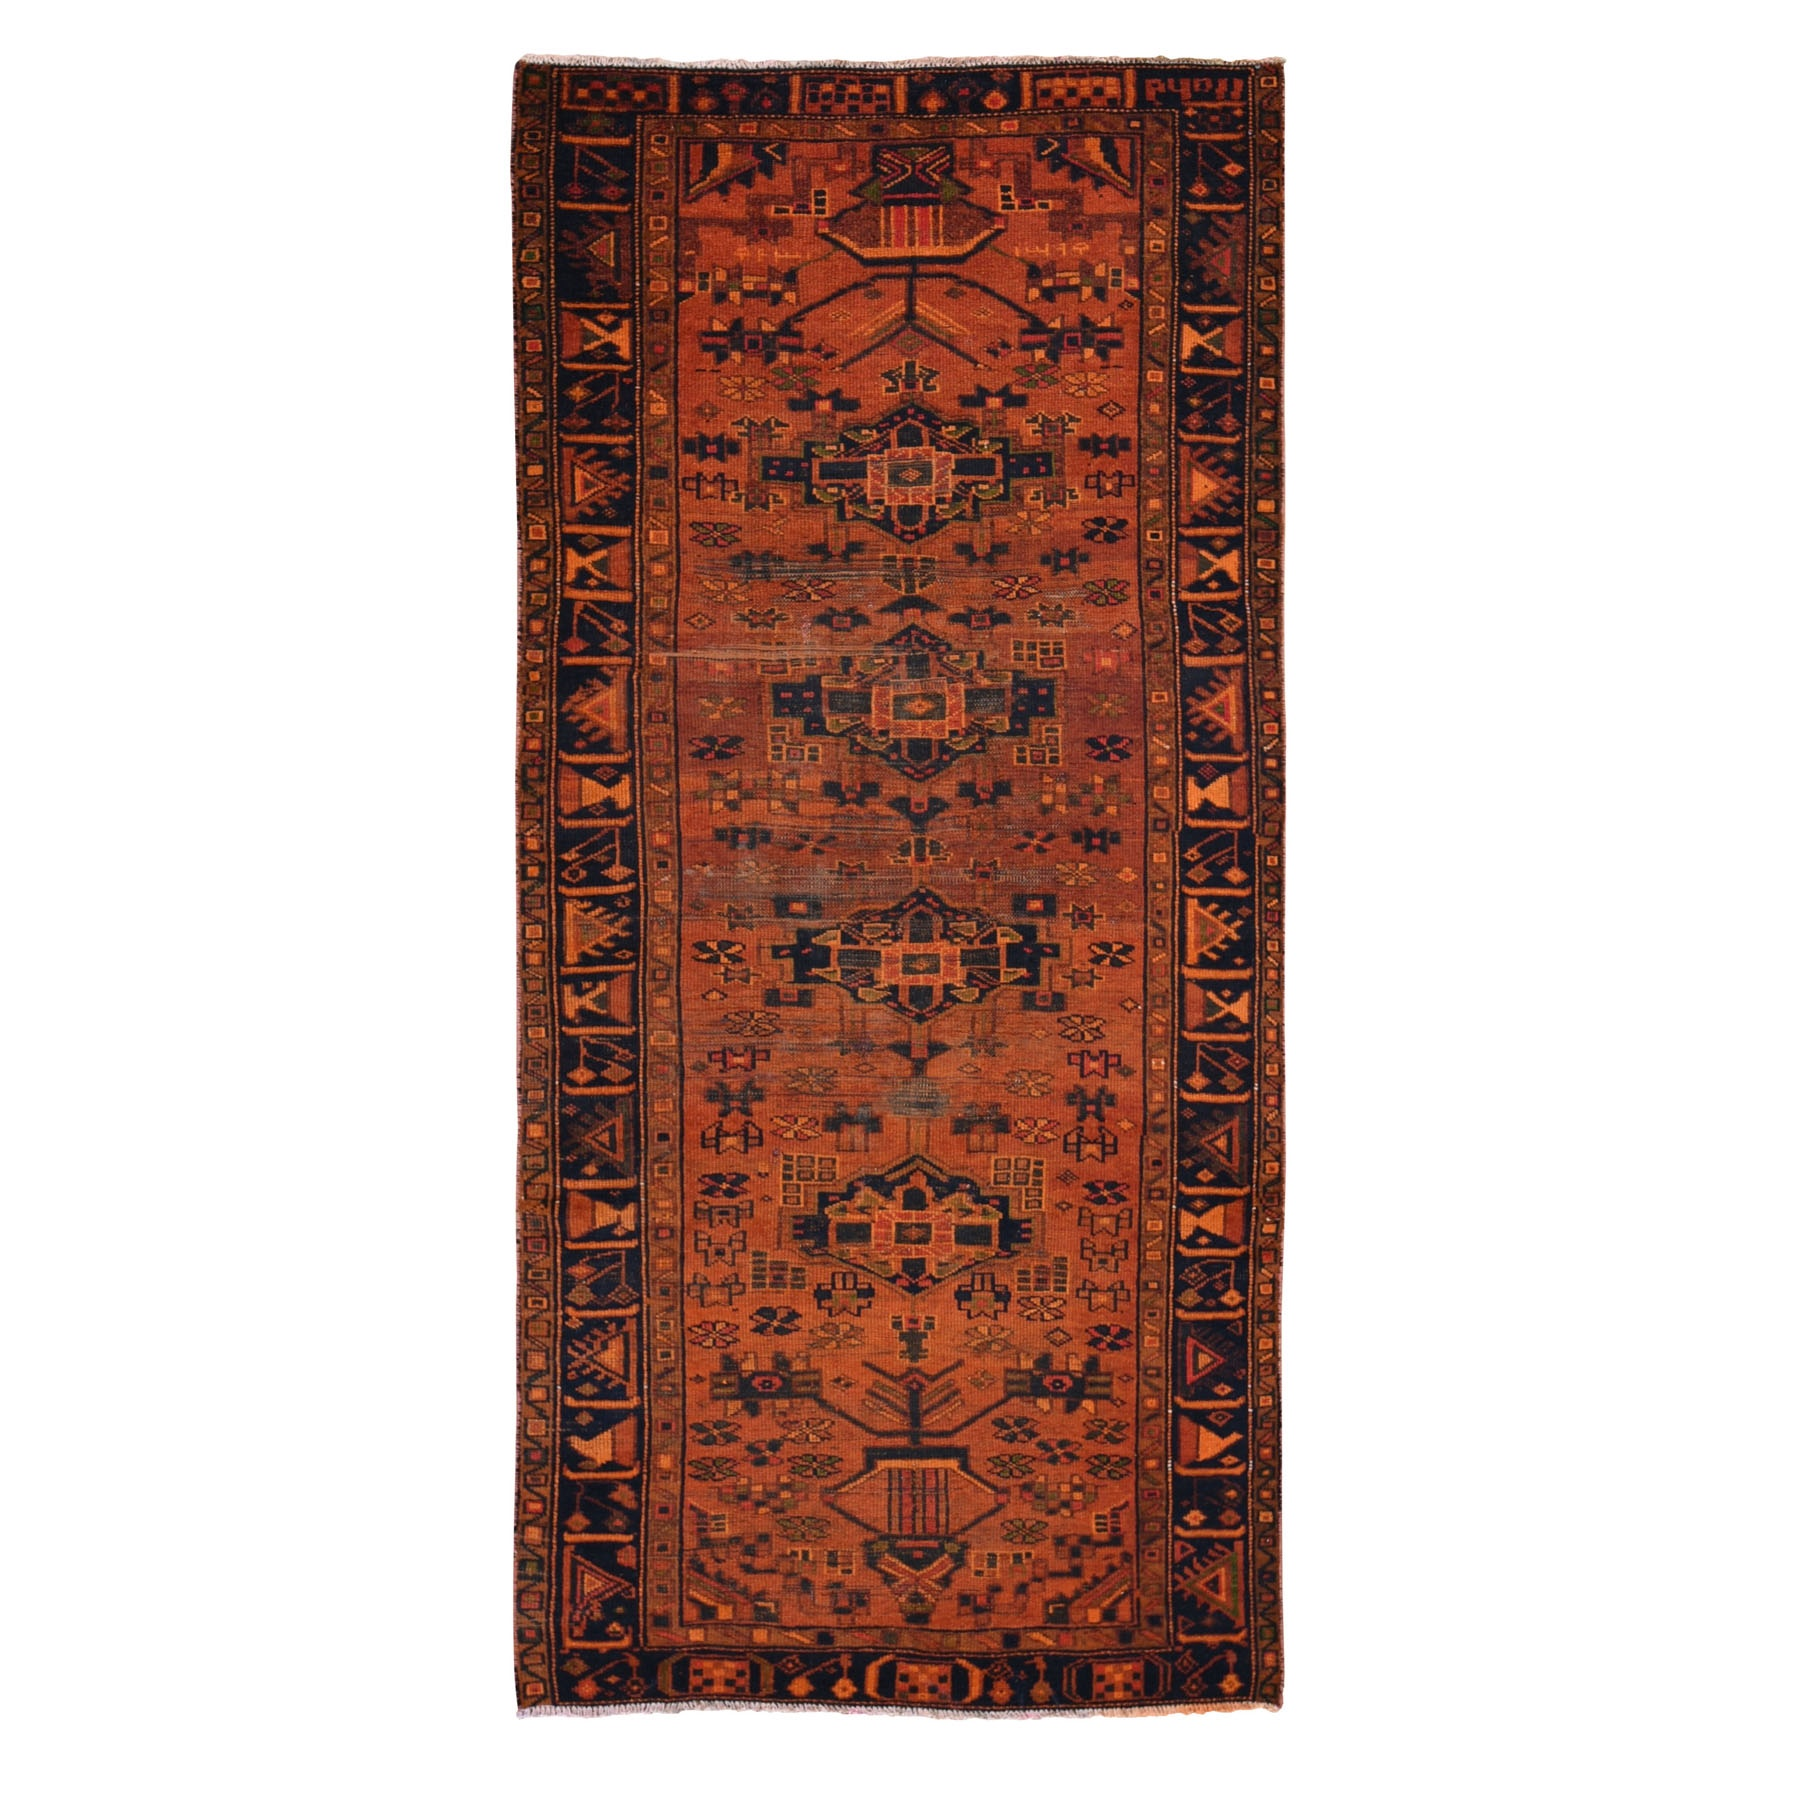 Fetneh Collection And Vintage Overdyed Collection Hand Knotted Orange Rug No: 01118424